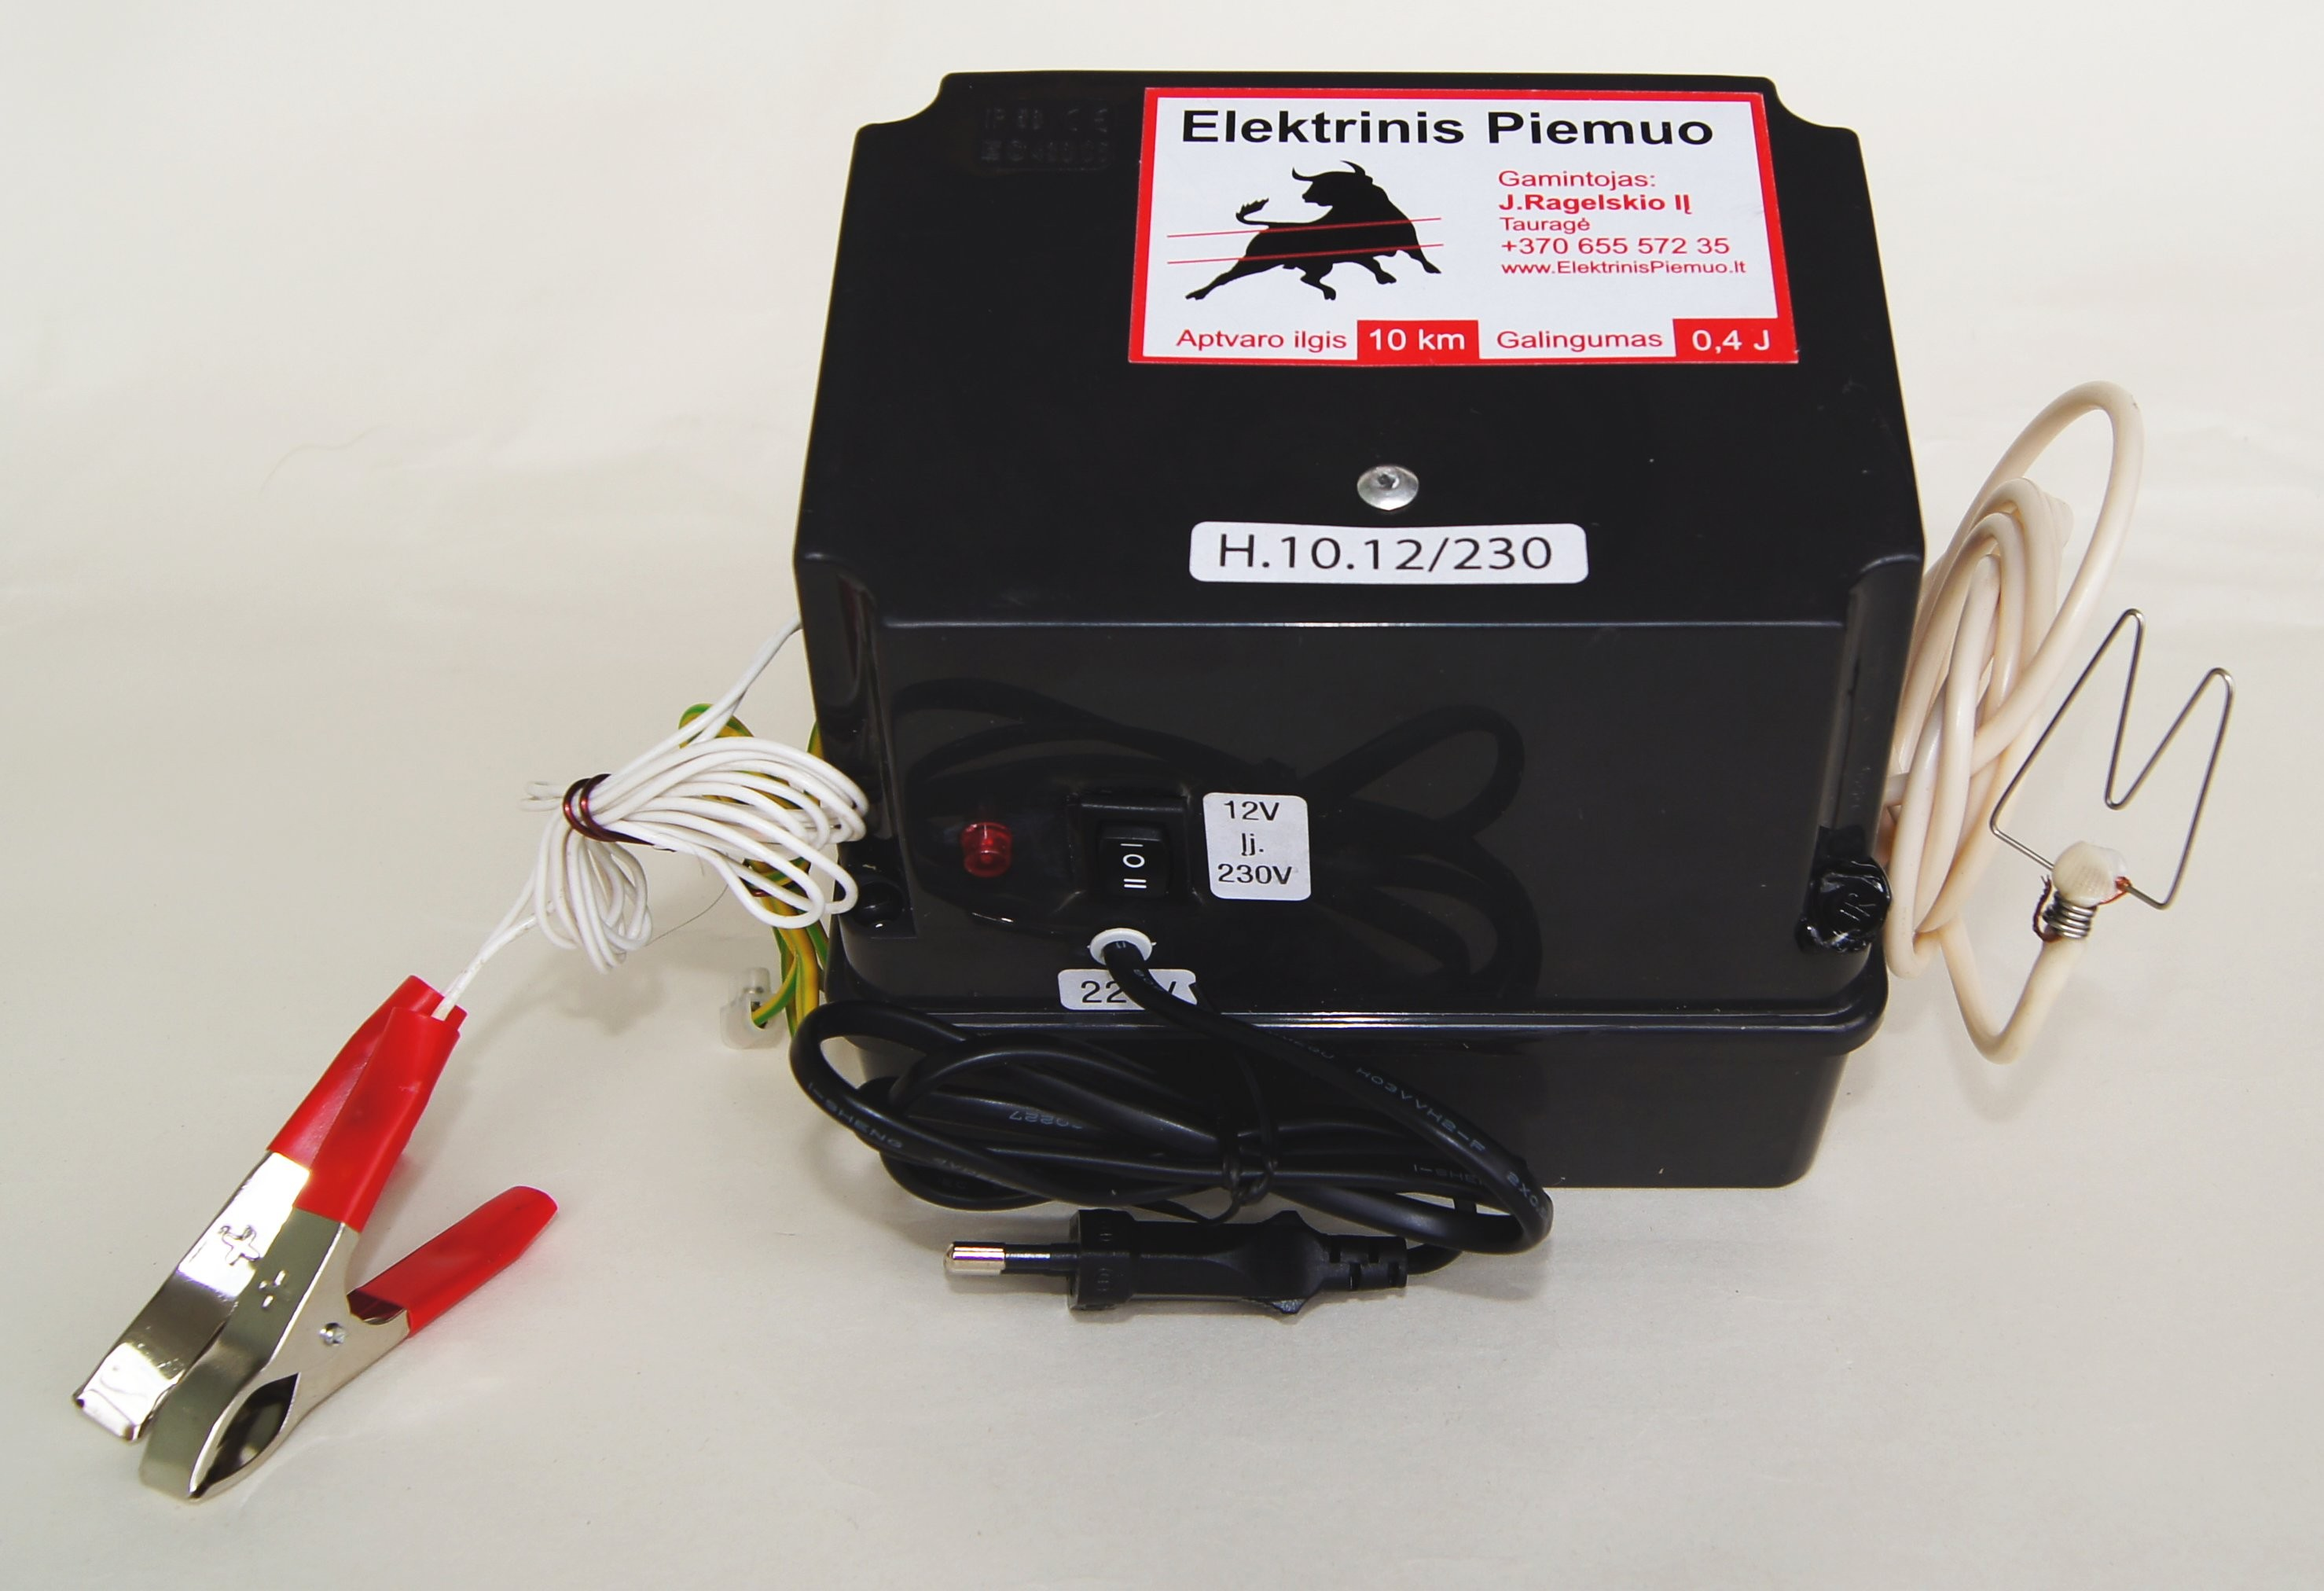 01 006 Electric shepherd device 10H – impuls generator – 10.12/230 H (universal)